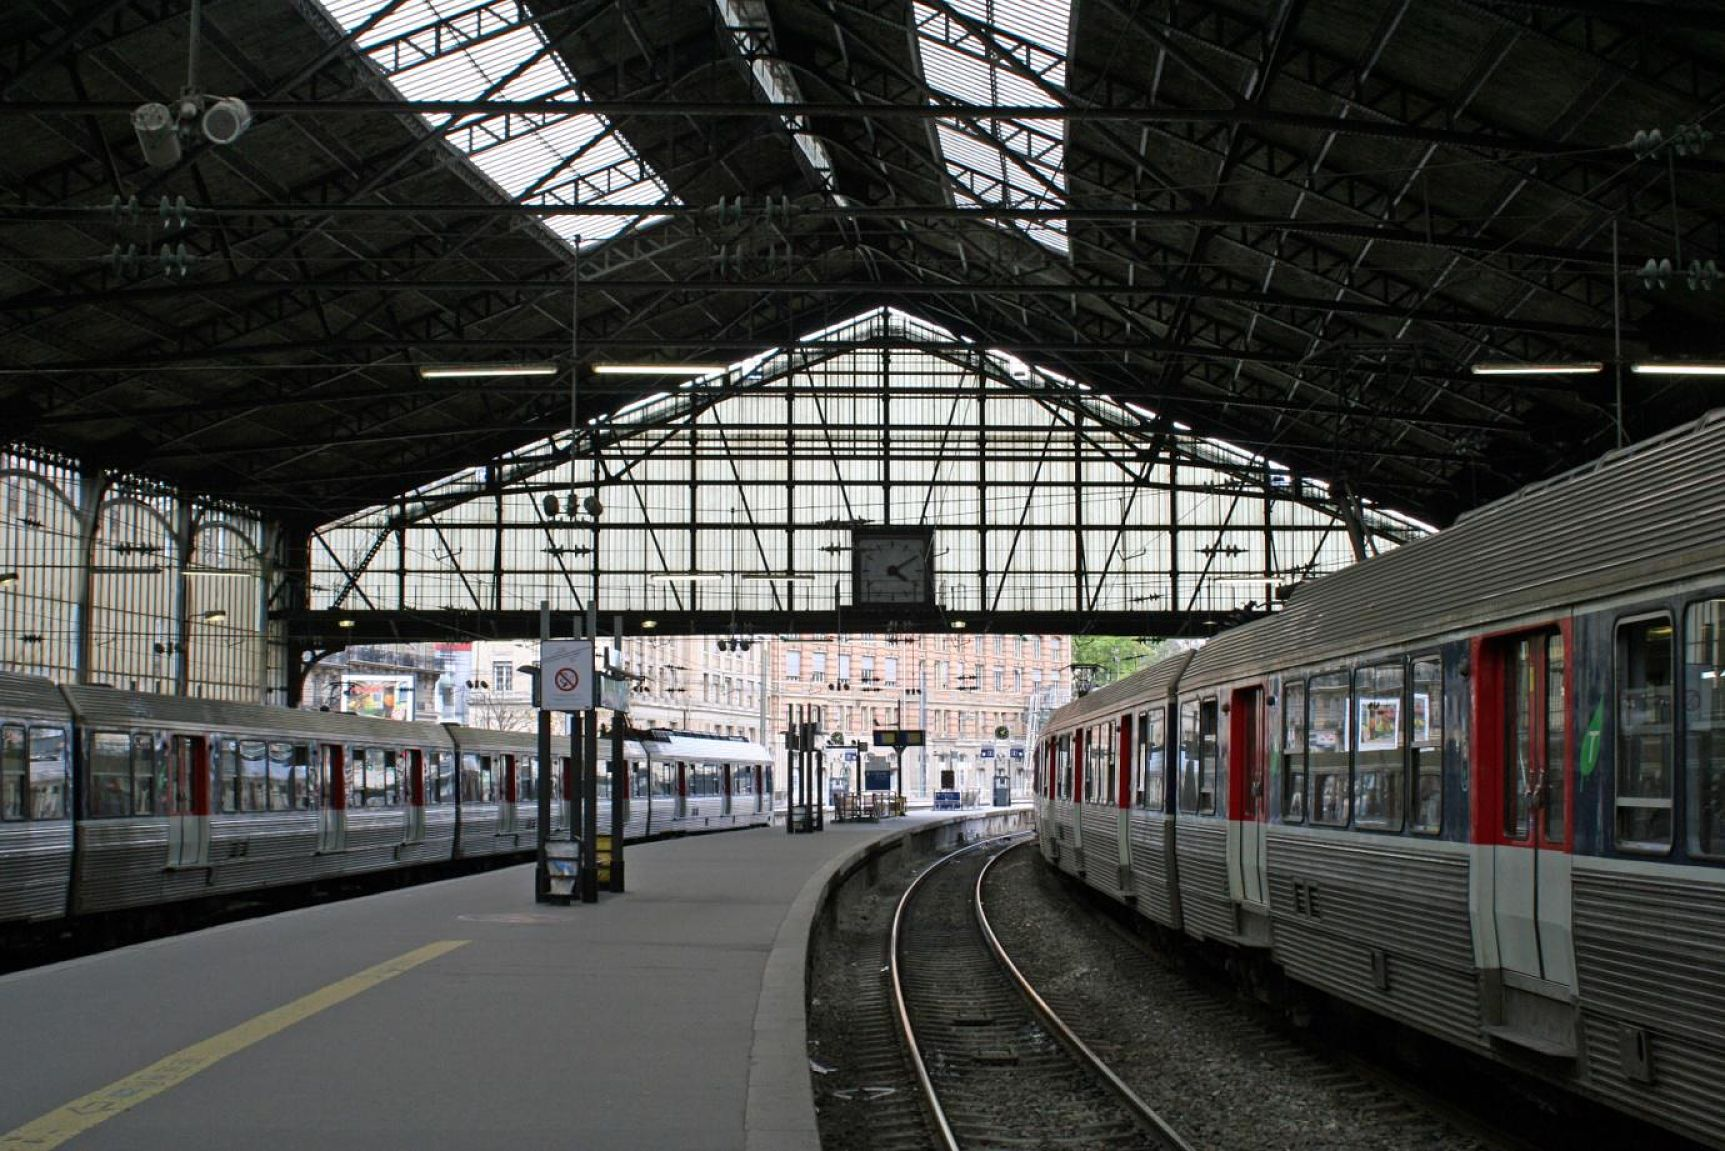 The Gare Saint Lazare today, from which we leave for Giverny.